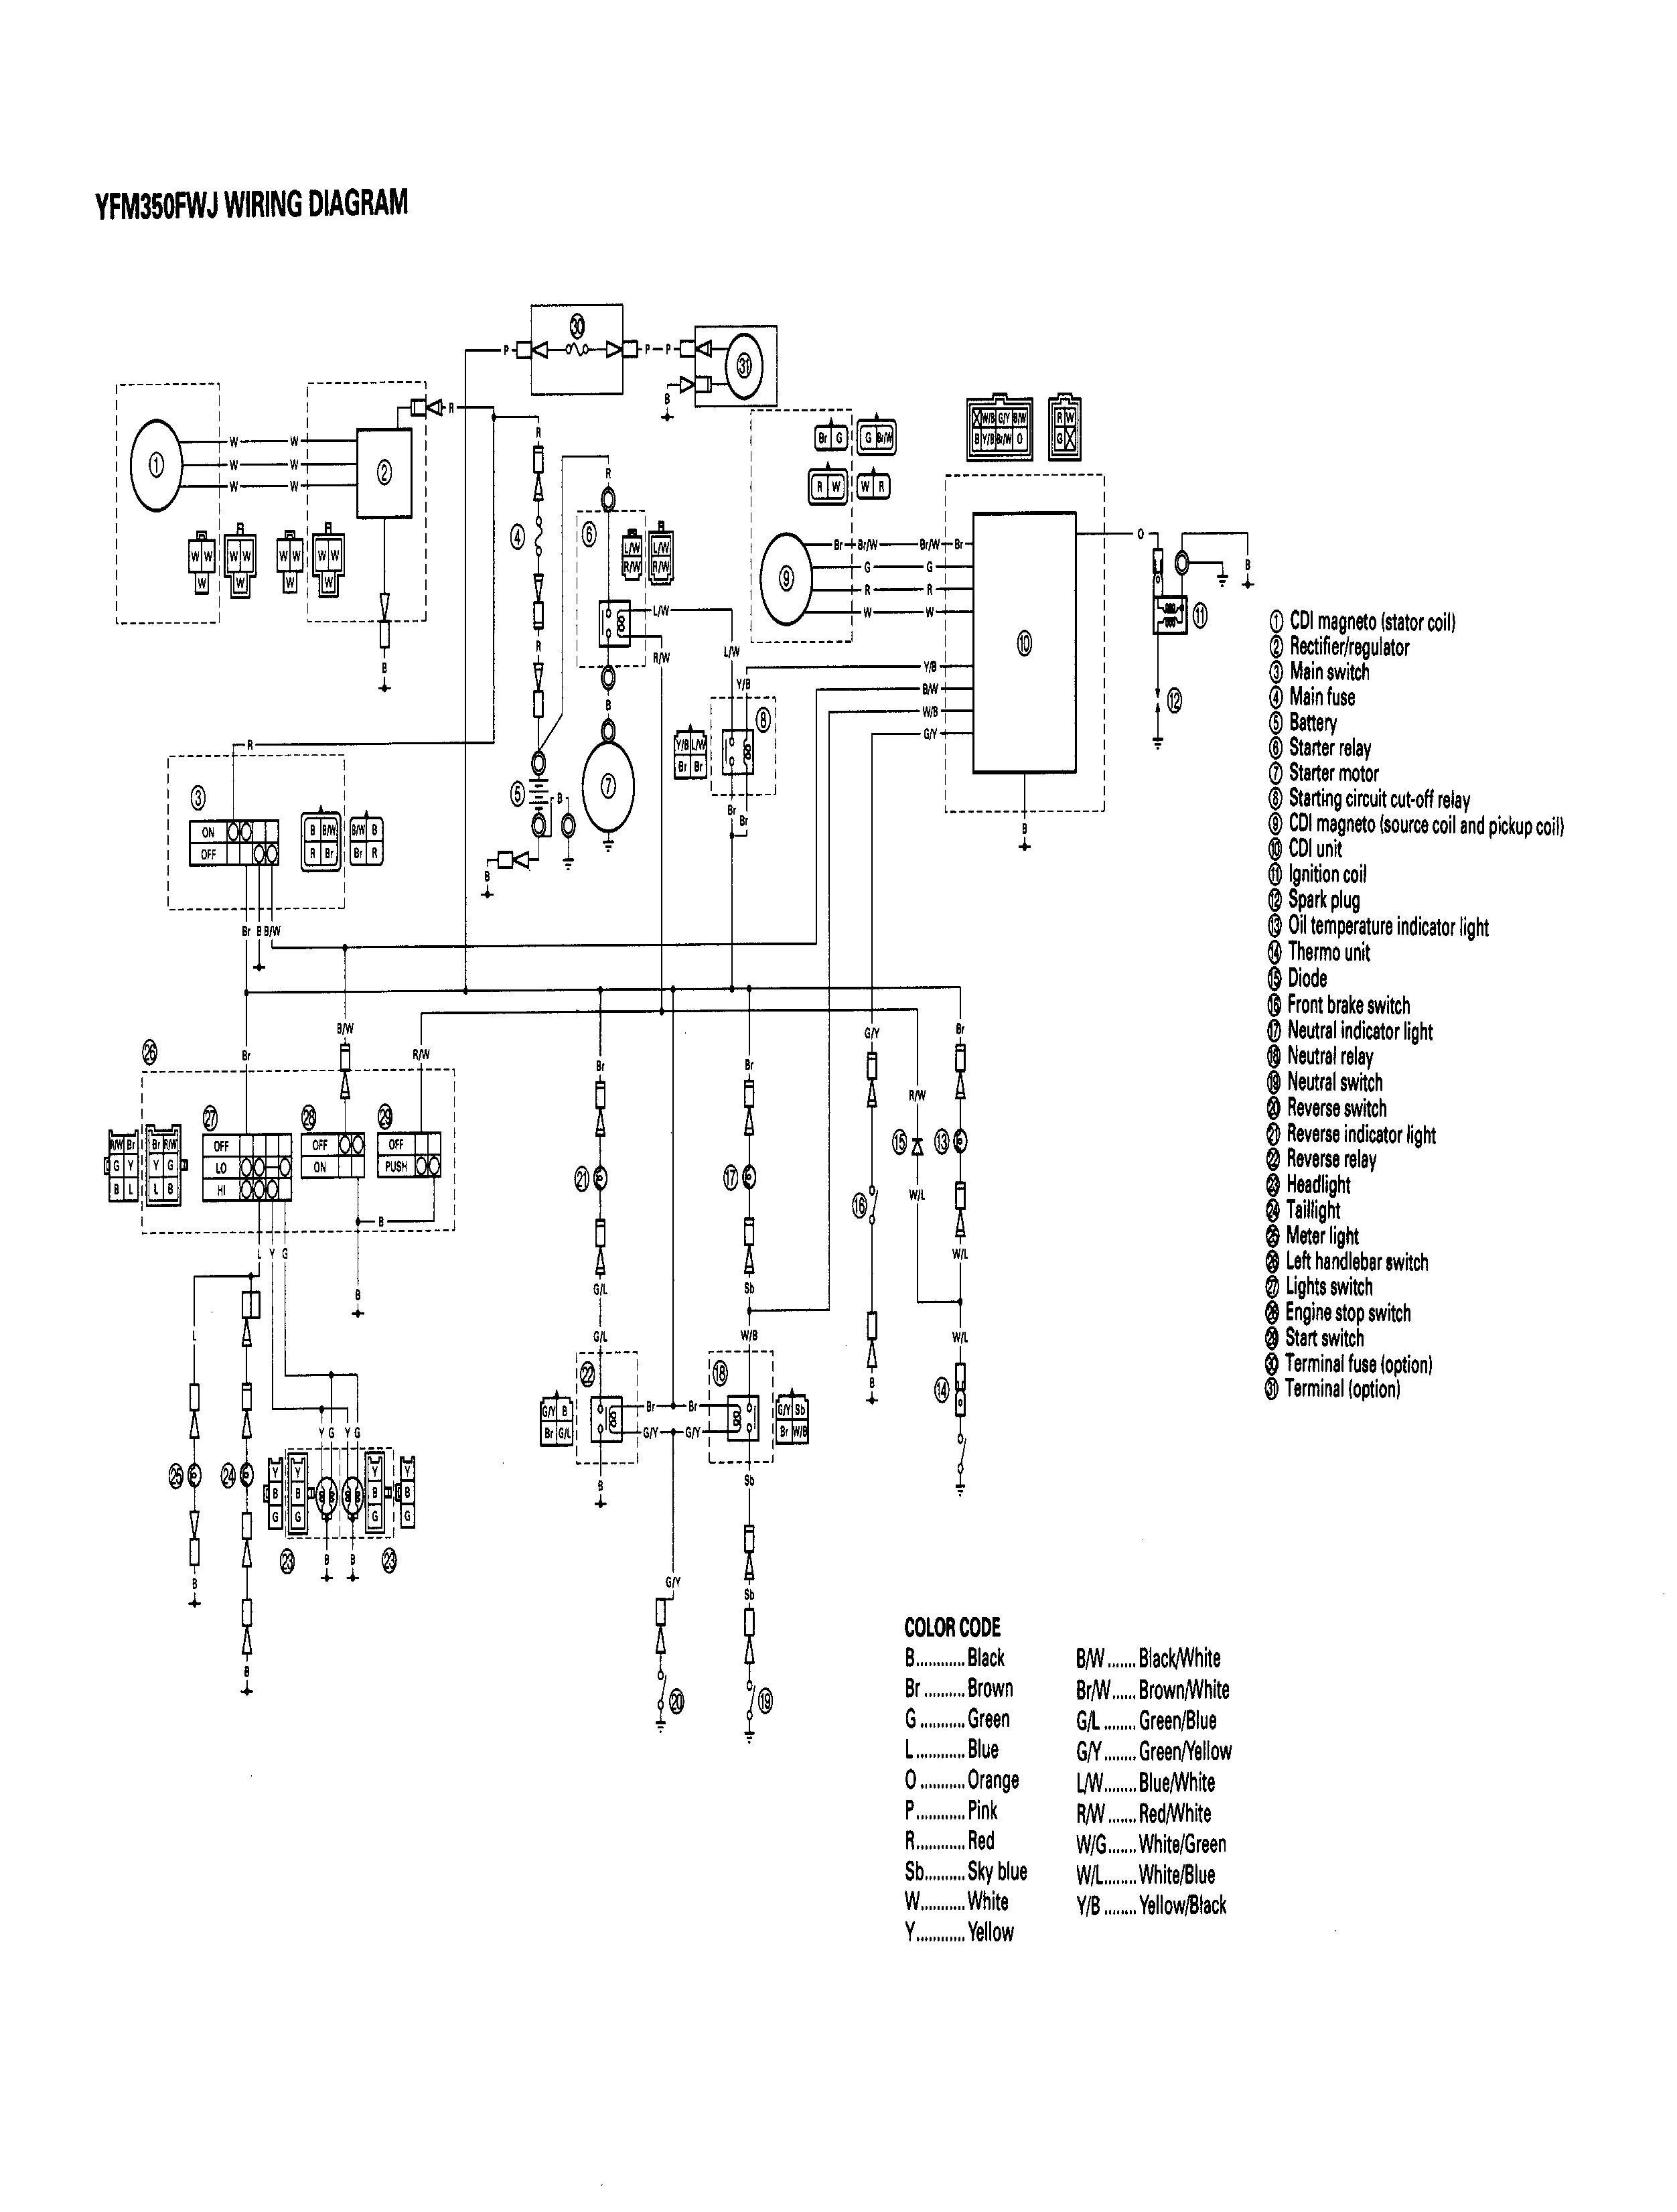 switch wiring diagram for yamaha big bear 4x4 wiring diagram for yamaha big bear 400